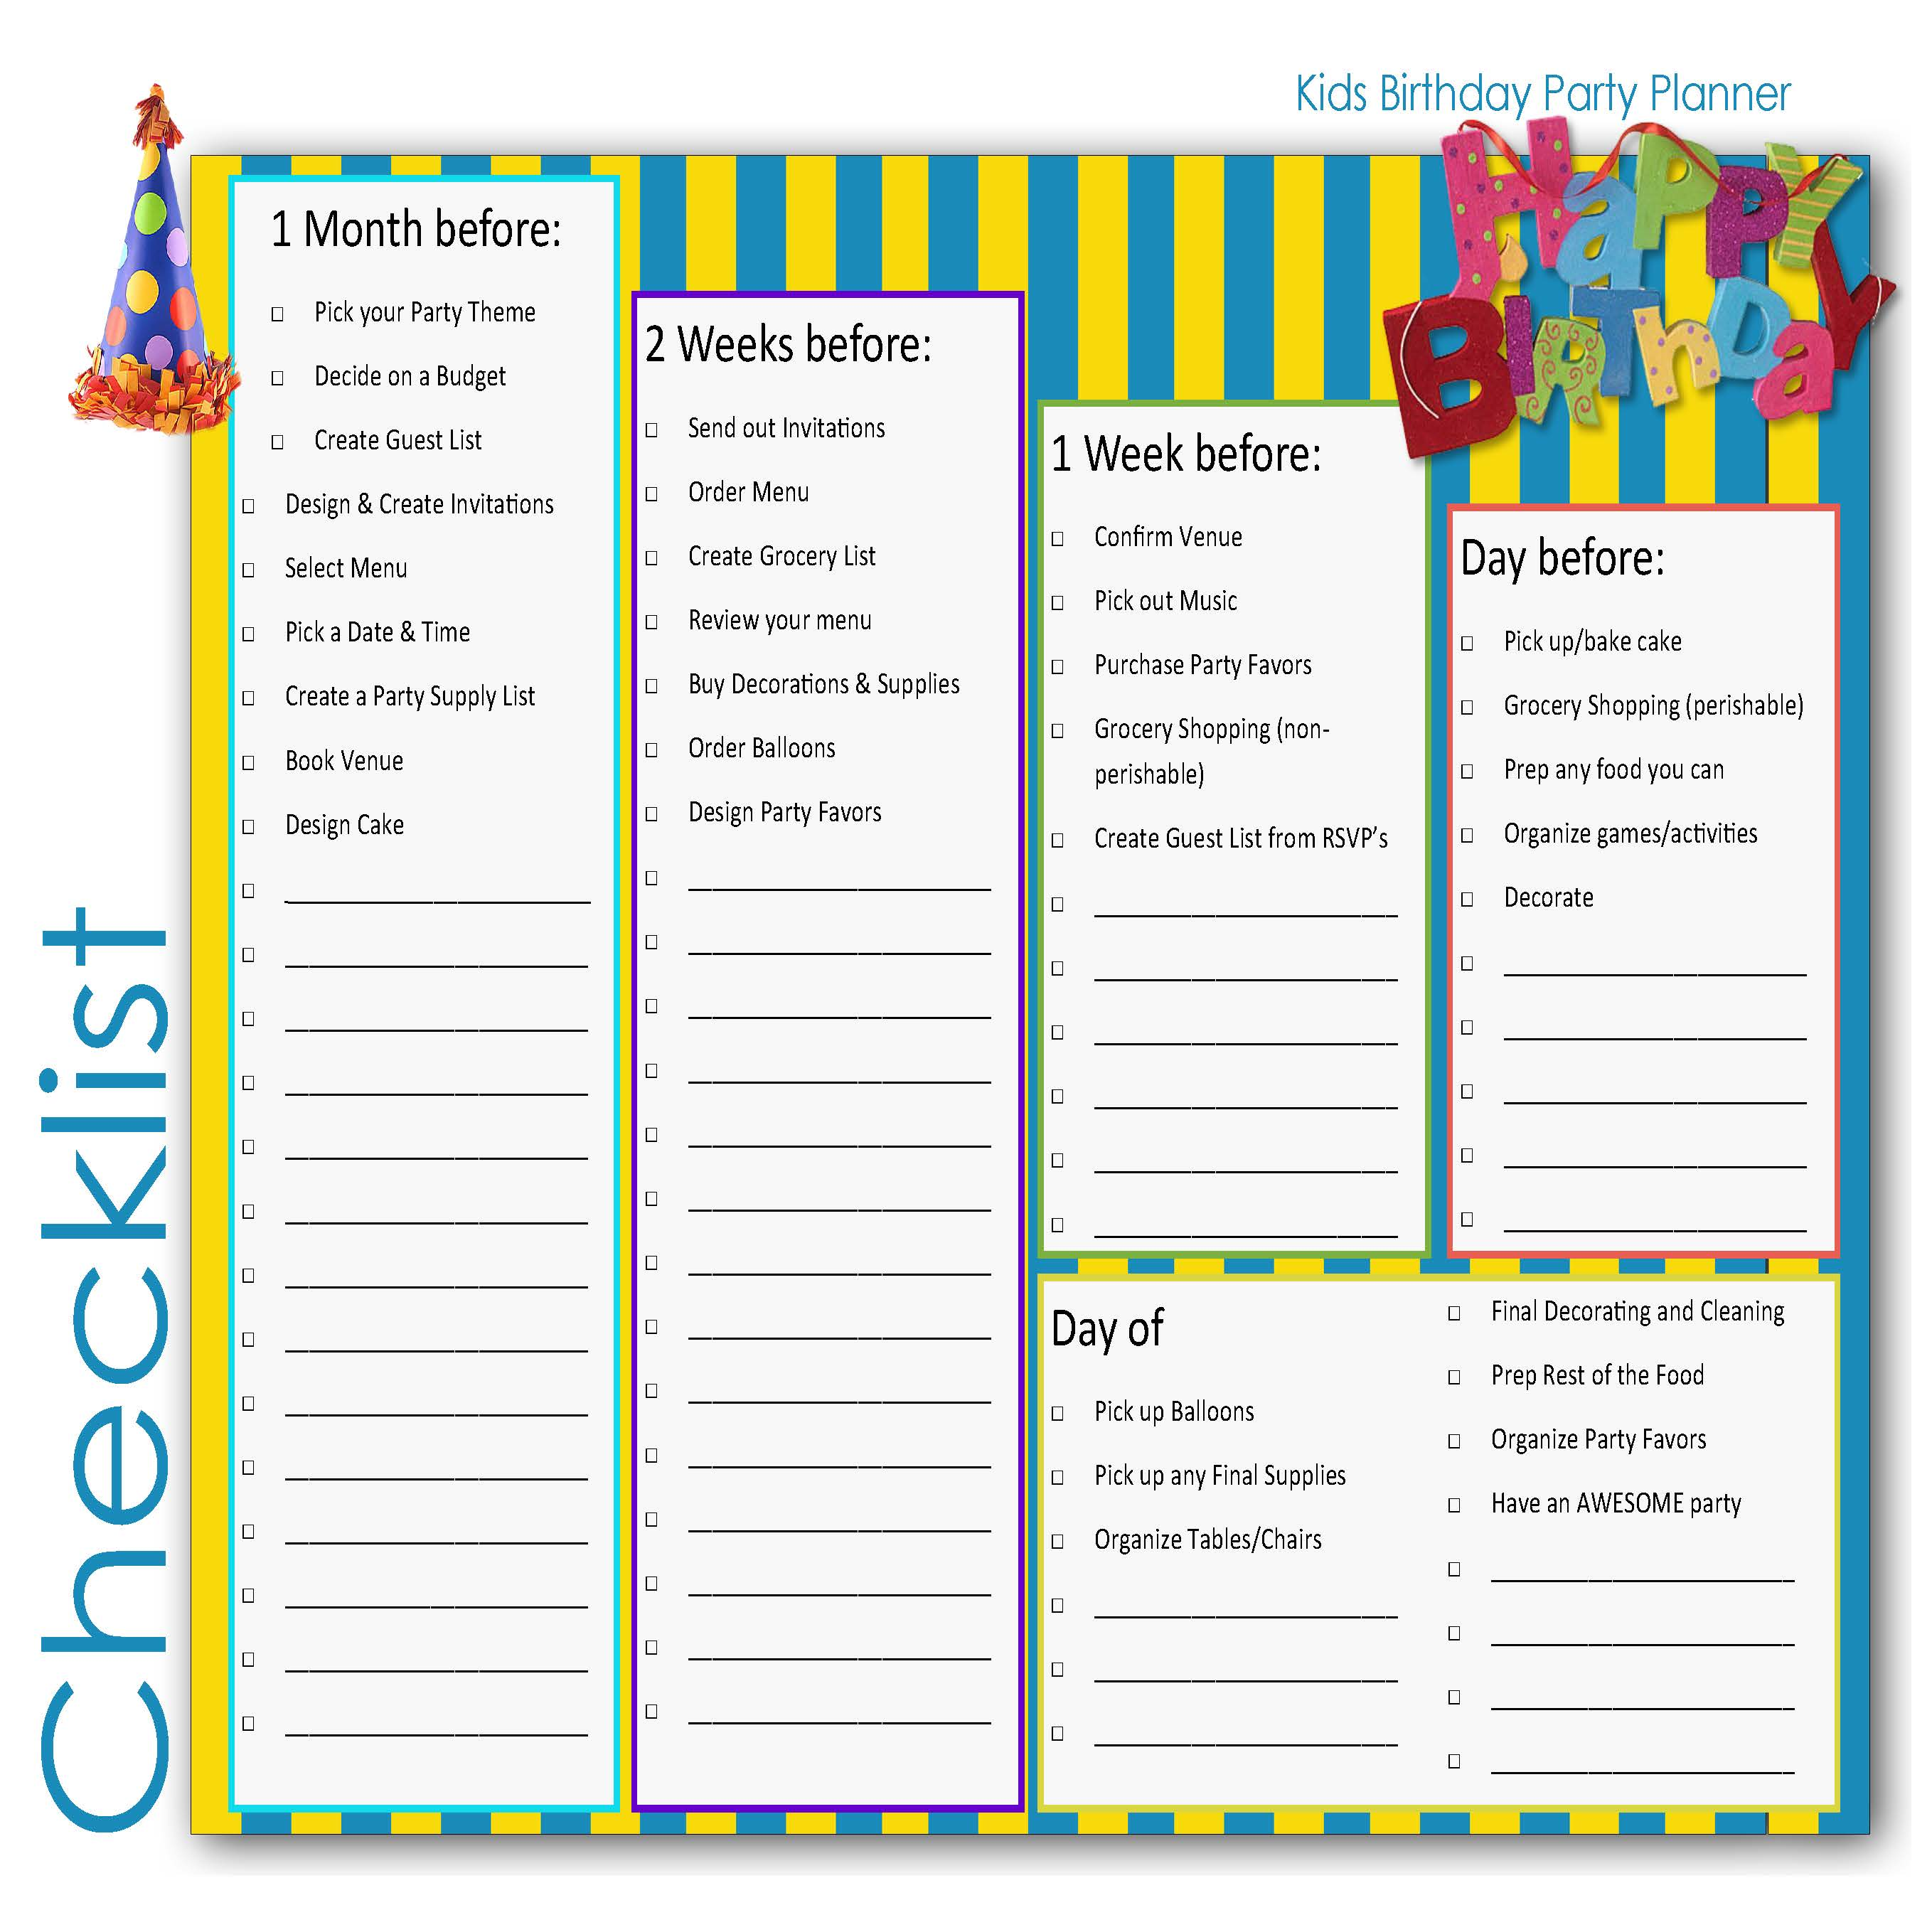 Birthday Party Planner Checklist For Kids